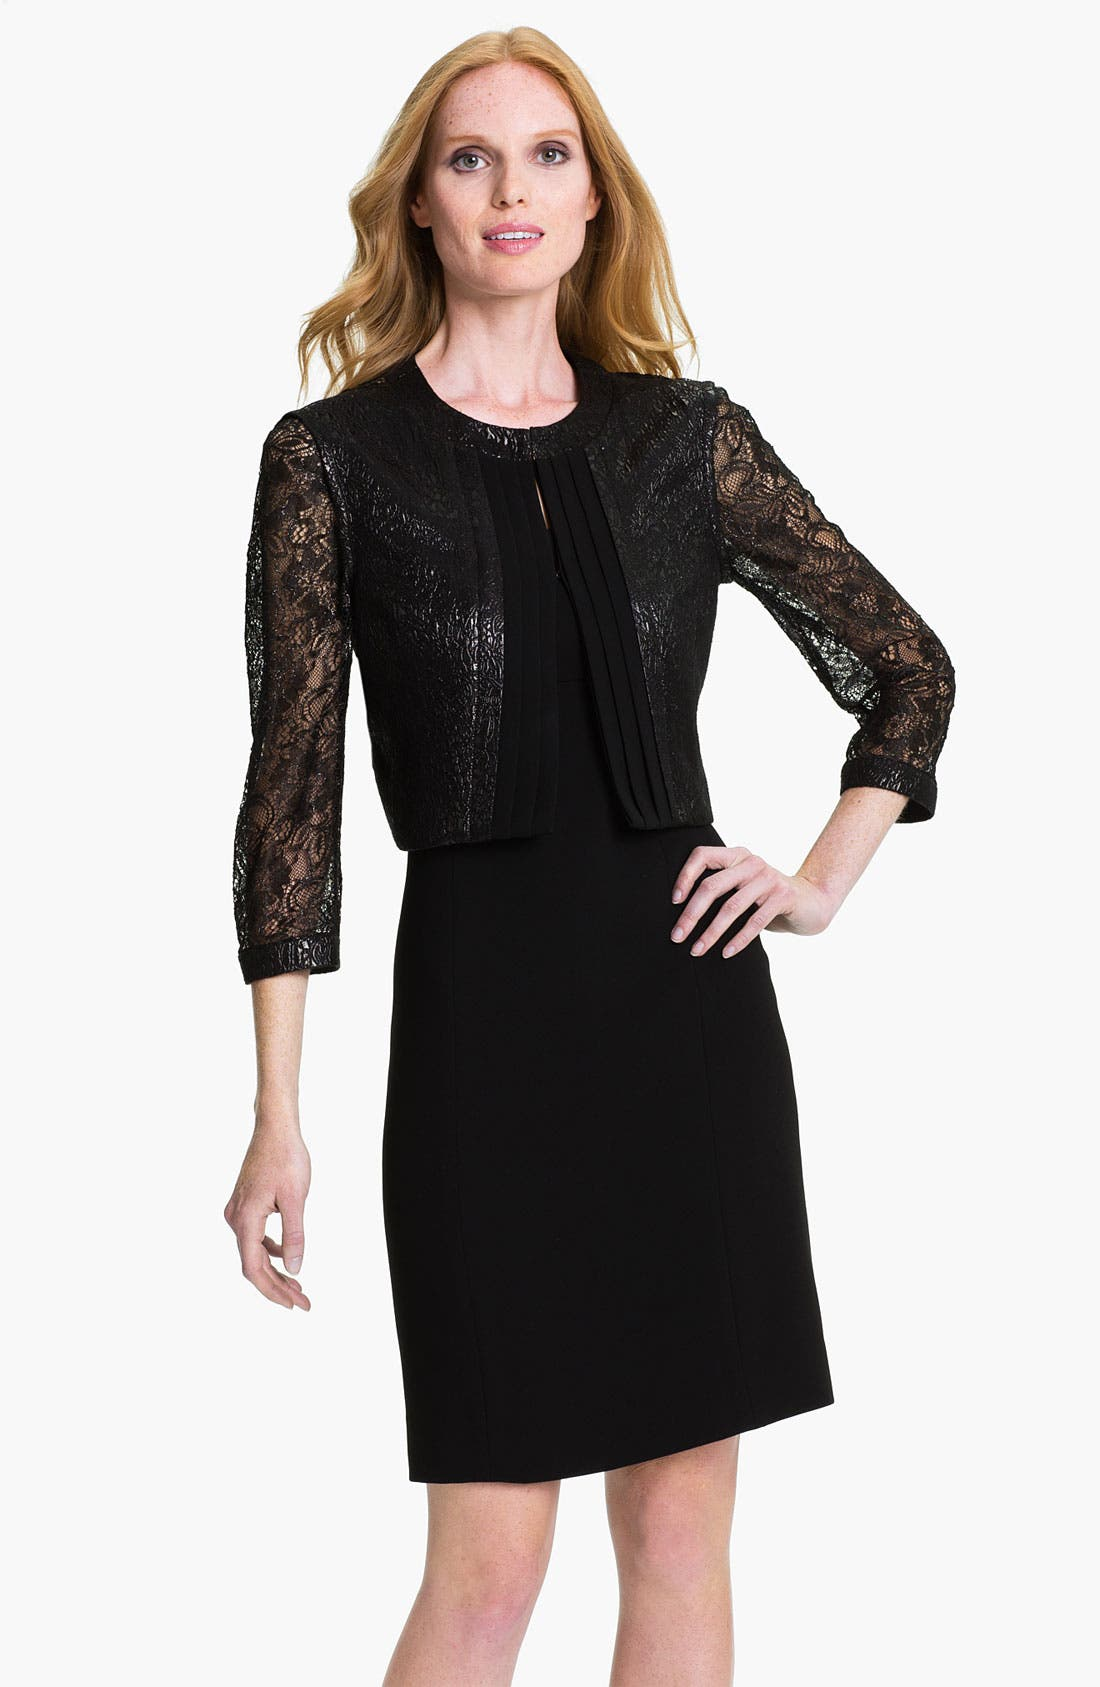 Main Image - Tahari Sleeveless Sheath Dress & Metallic Lace Jacket